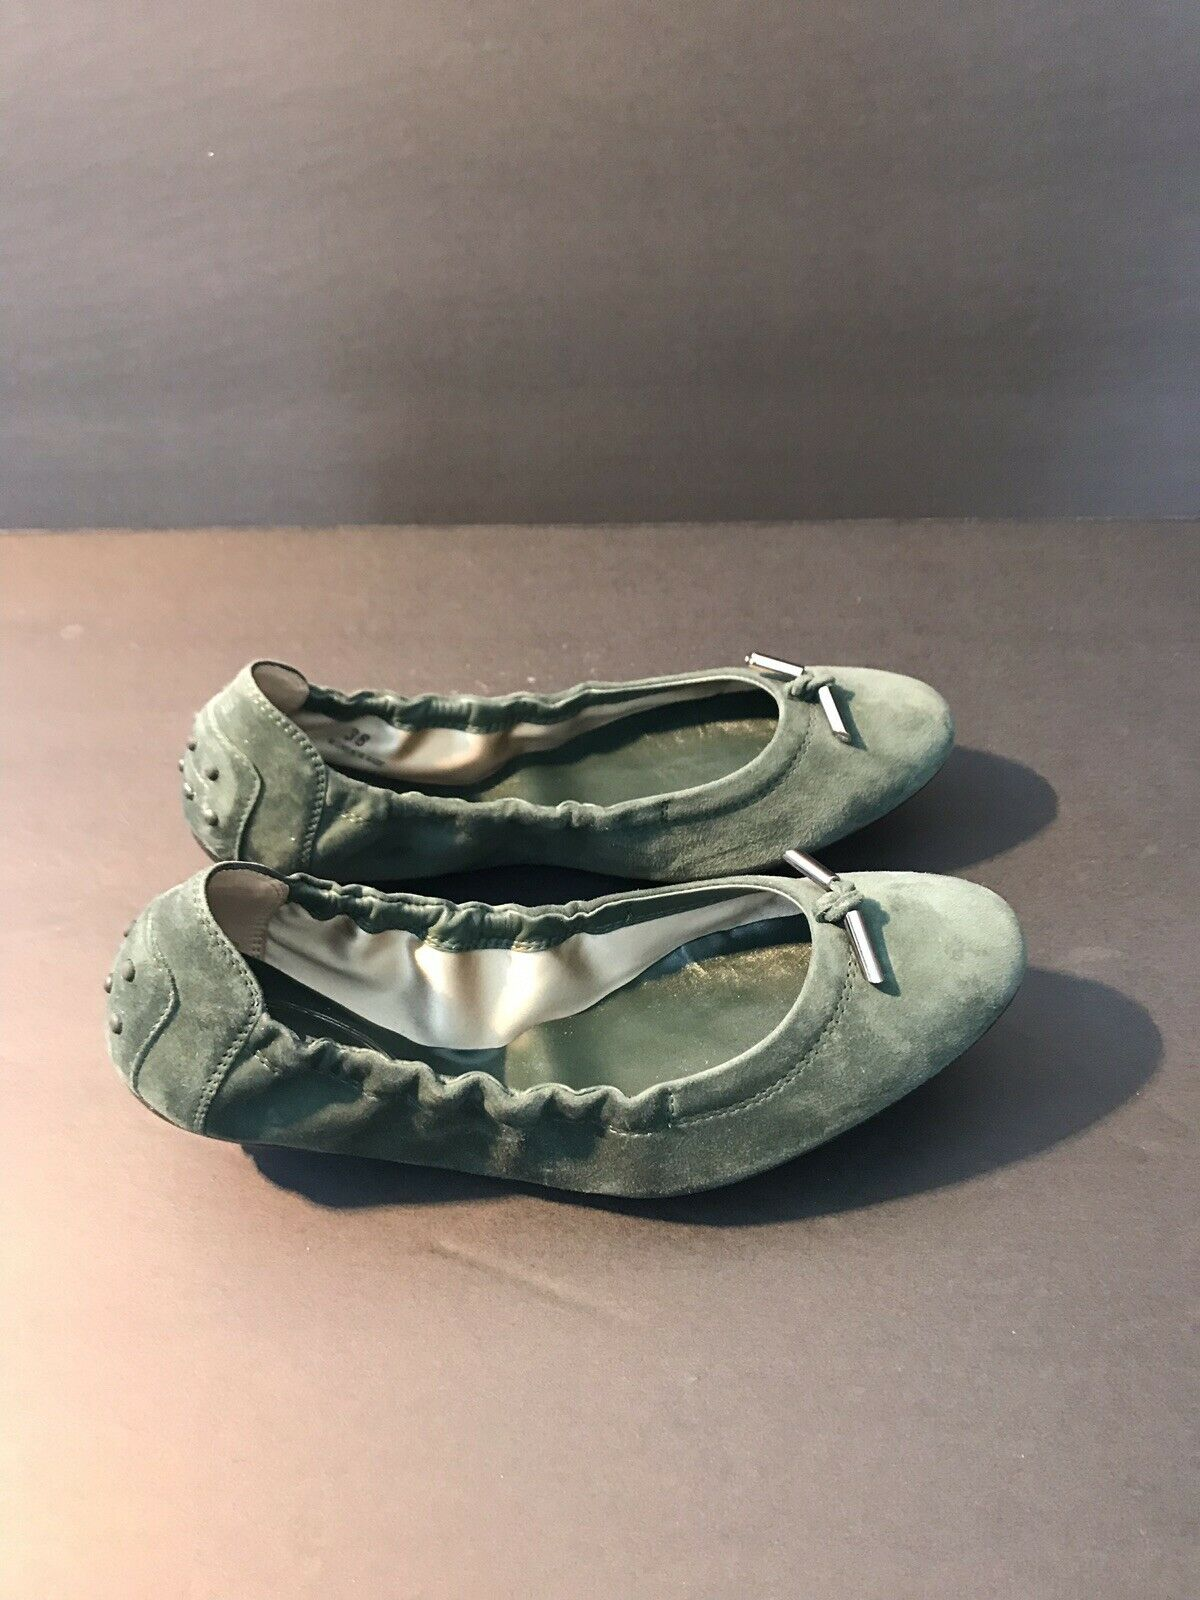 New Tod's Dee Laccetto Dark Dark Dark Green Ballerina Flats shoes With Front Ties Size 39 c307ed